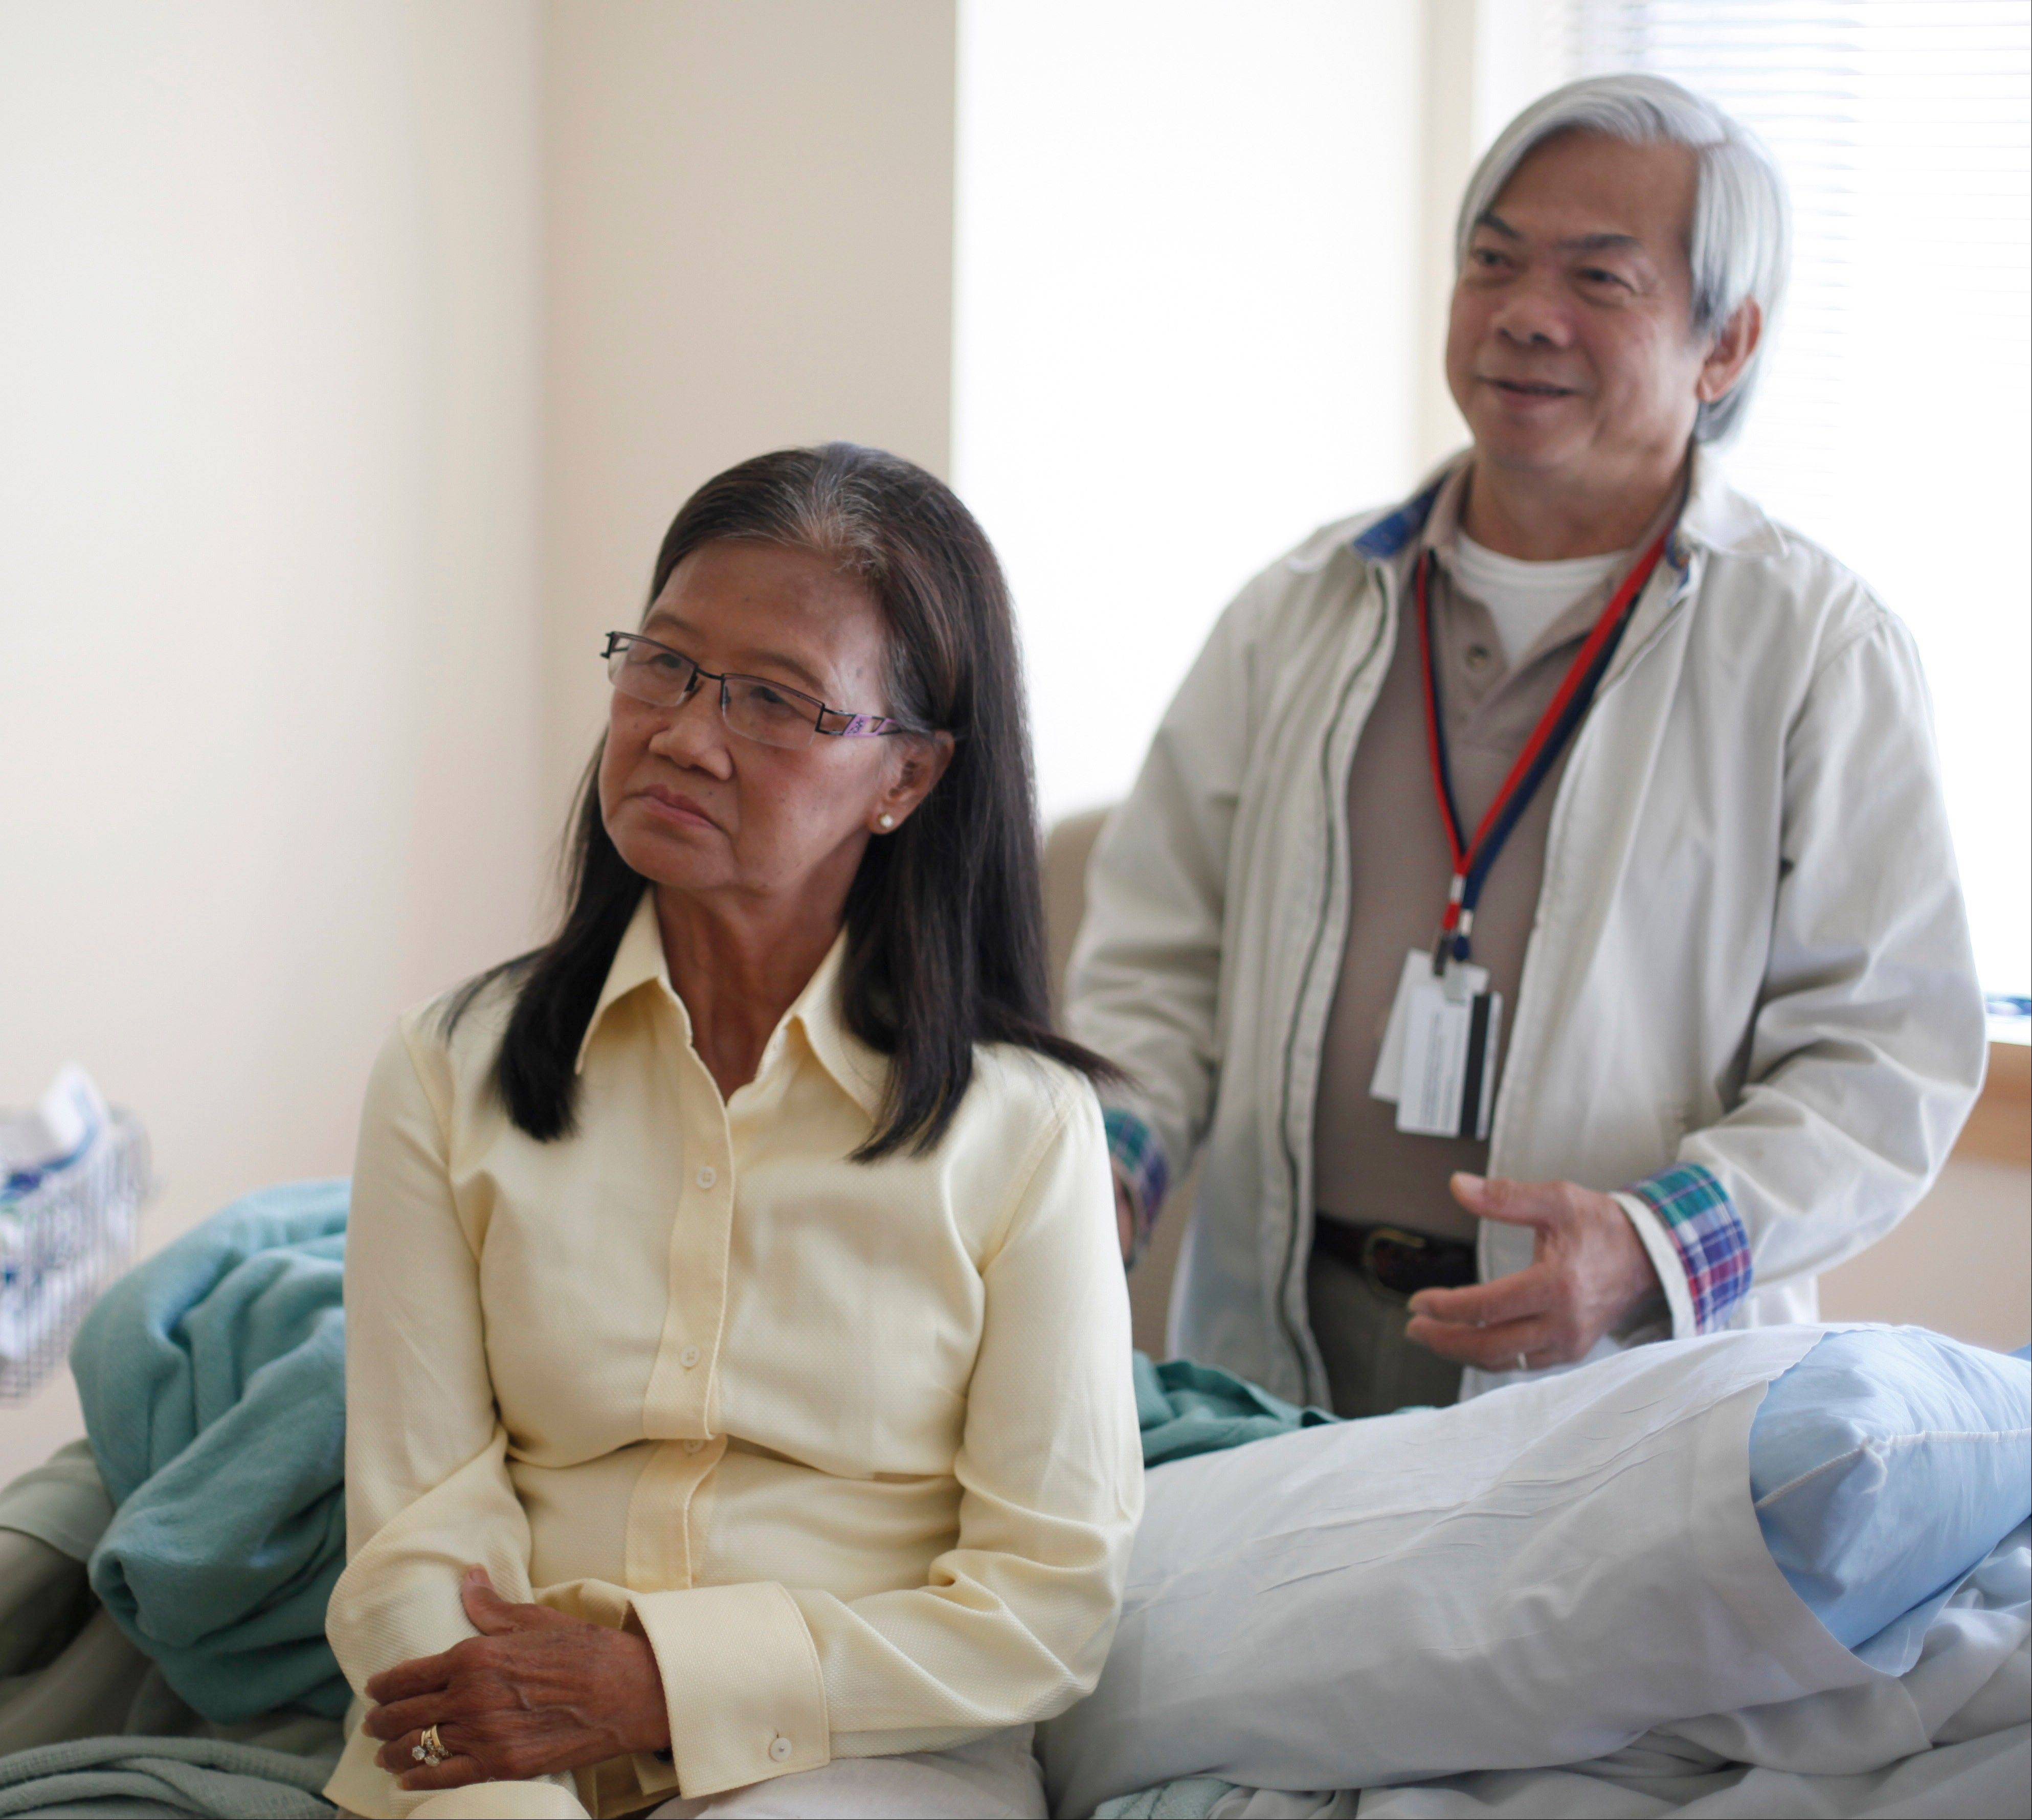 Patient Kim Nguyen, left, and her husband Quang Nguyen are trying to seek answers for a mysterious illness at the National Institutes of Health in Bethesda, Md. Researchers have identified a new disease that has left scores of people in Asia and some in the United States with AIDS-like symptoms even though they are not infected with HIV.